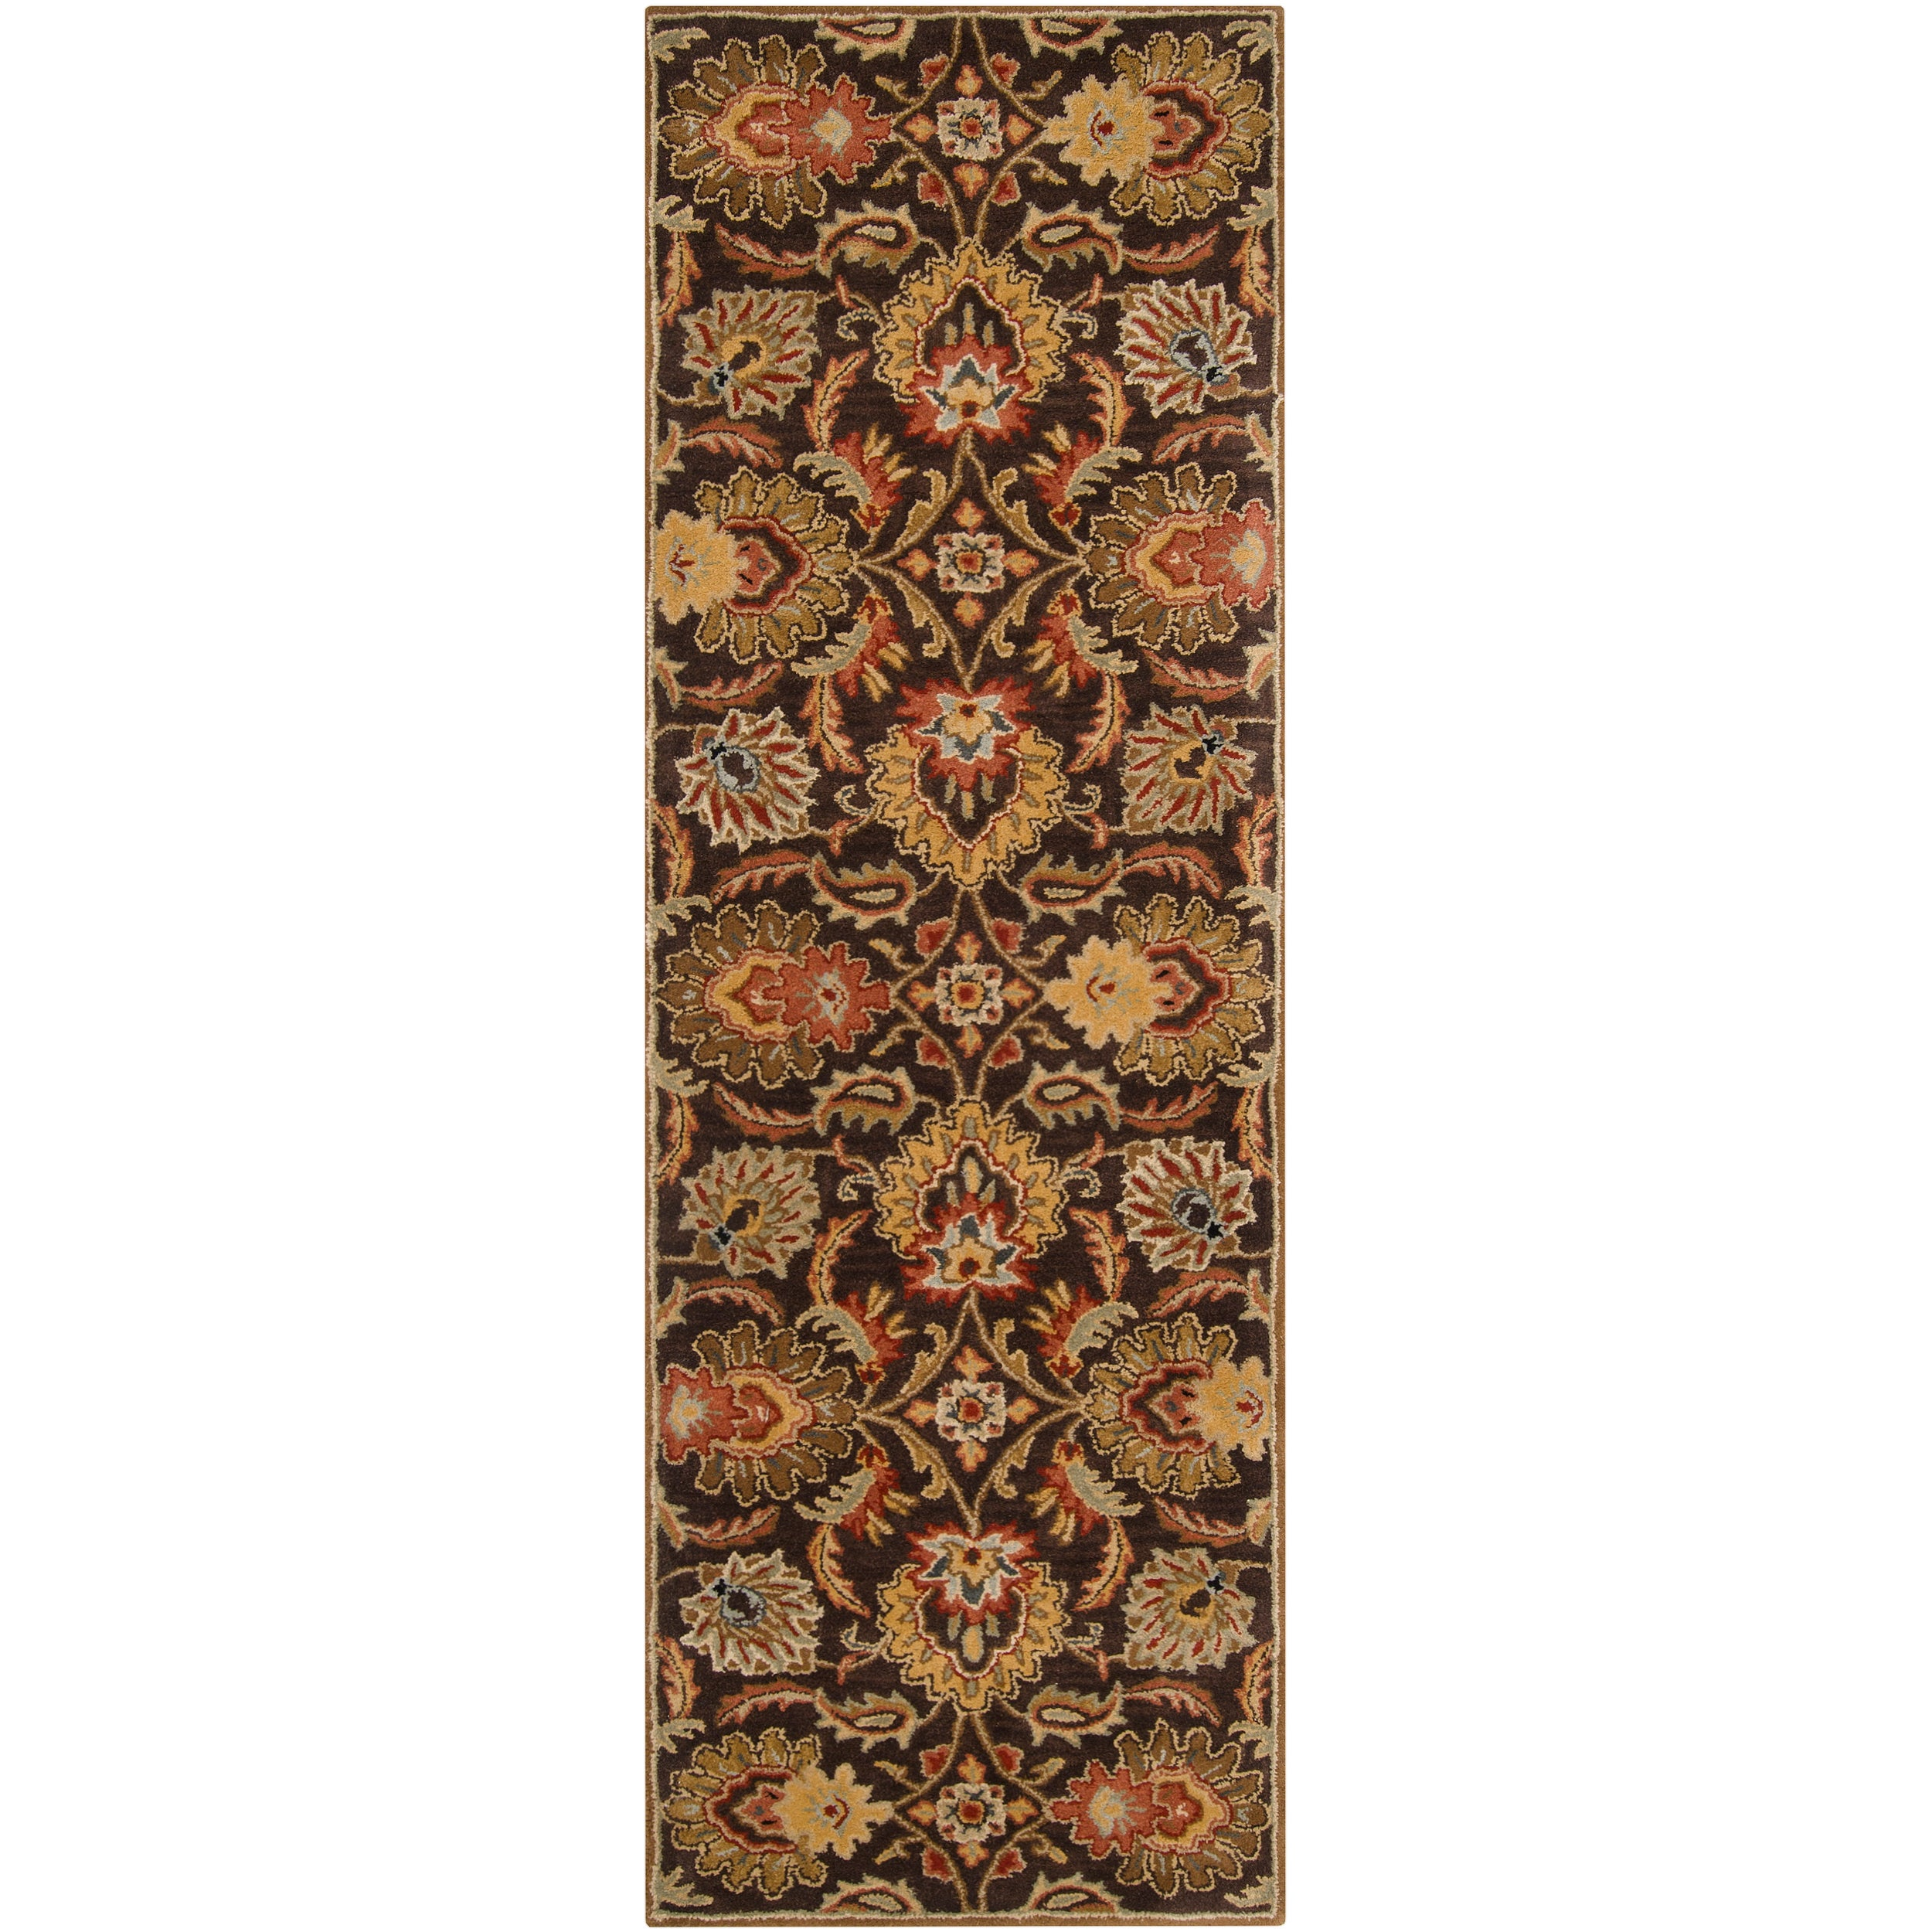 Hand-tufted Alafia Chocolate Brown Floral Wool Rug (3' x 12')